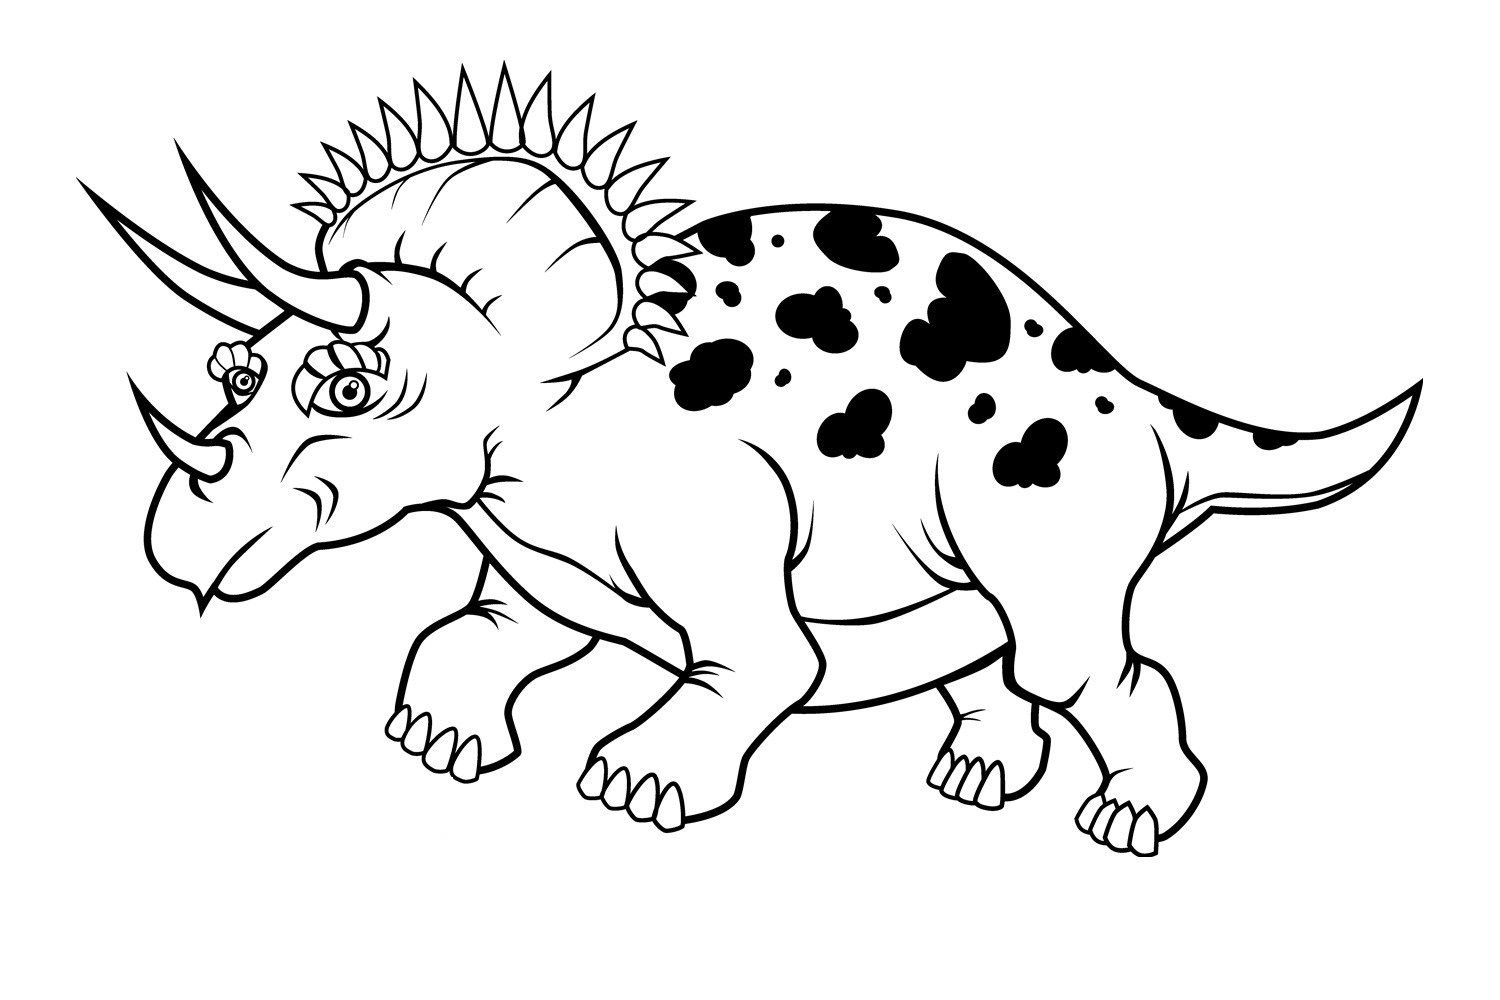 Coloring Pages For Youth : Free printable triceratops coloring pages for kids